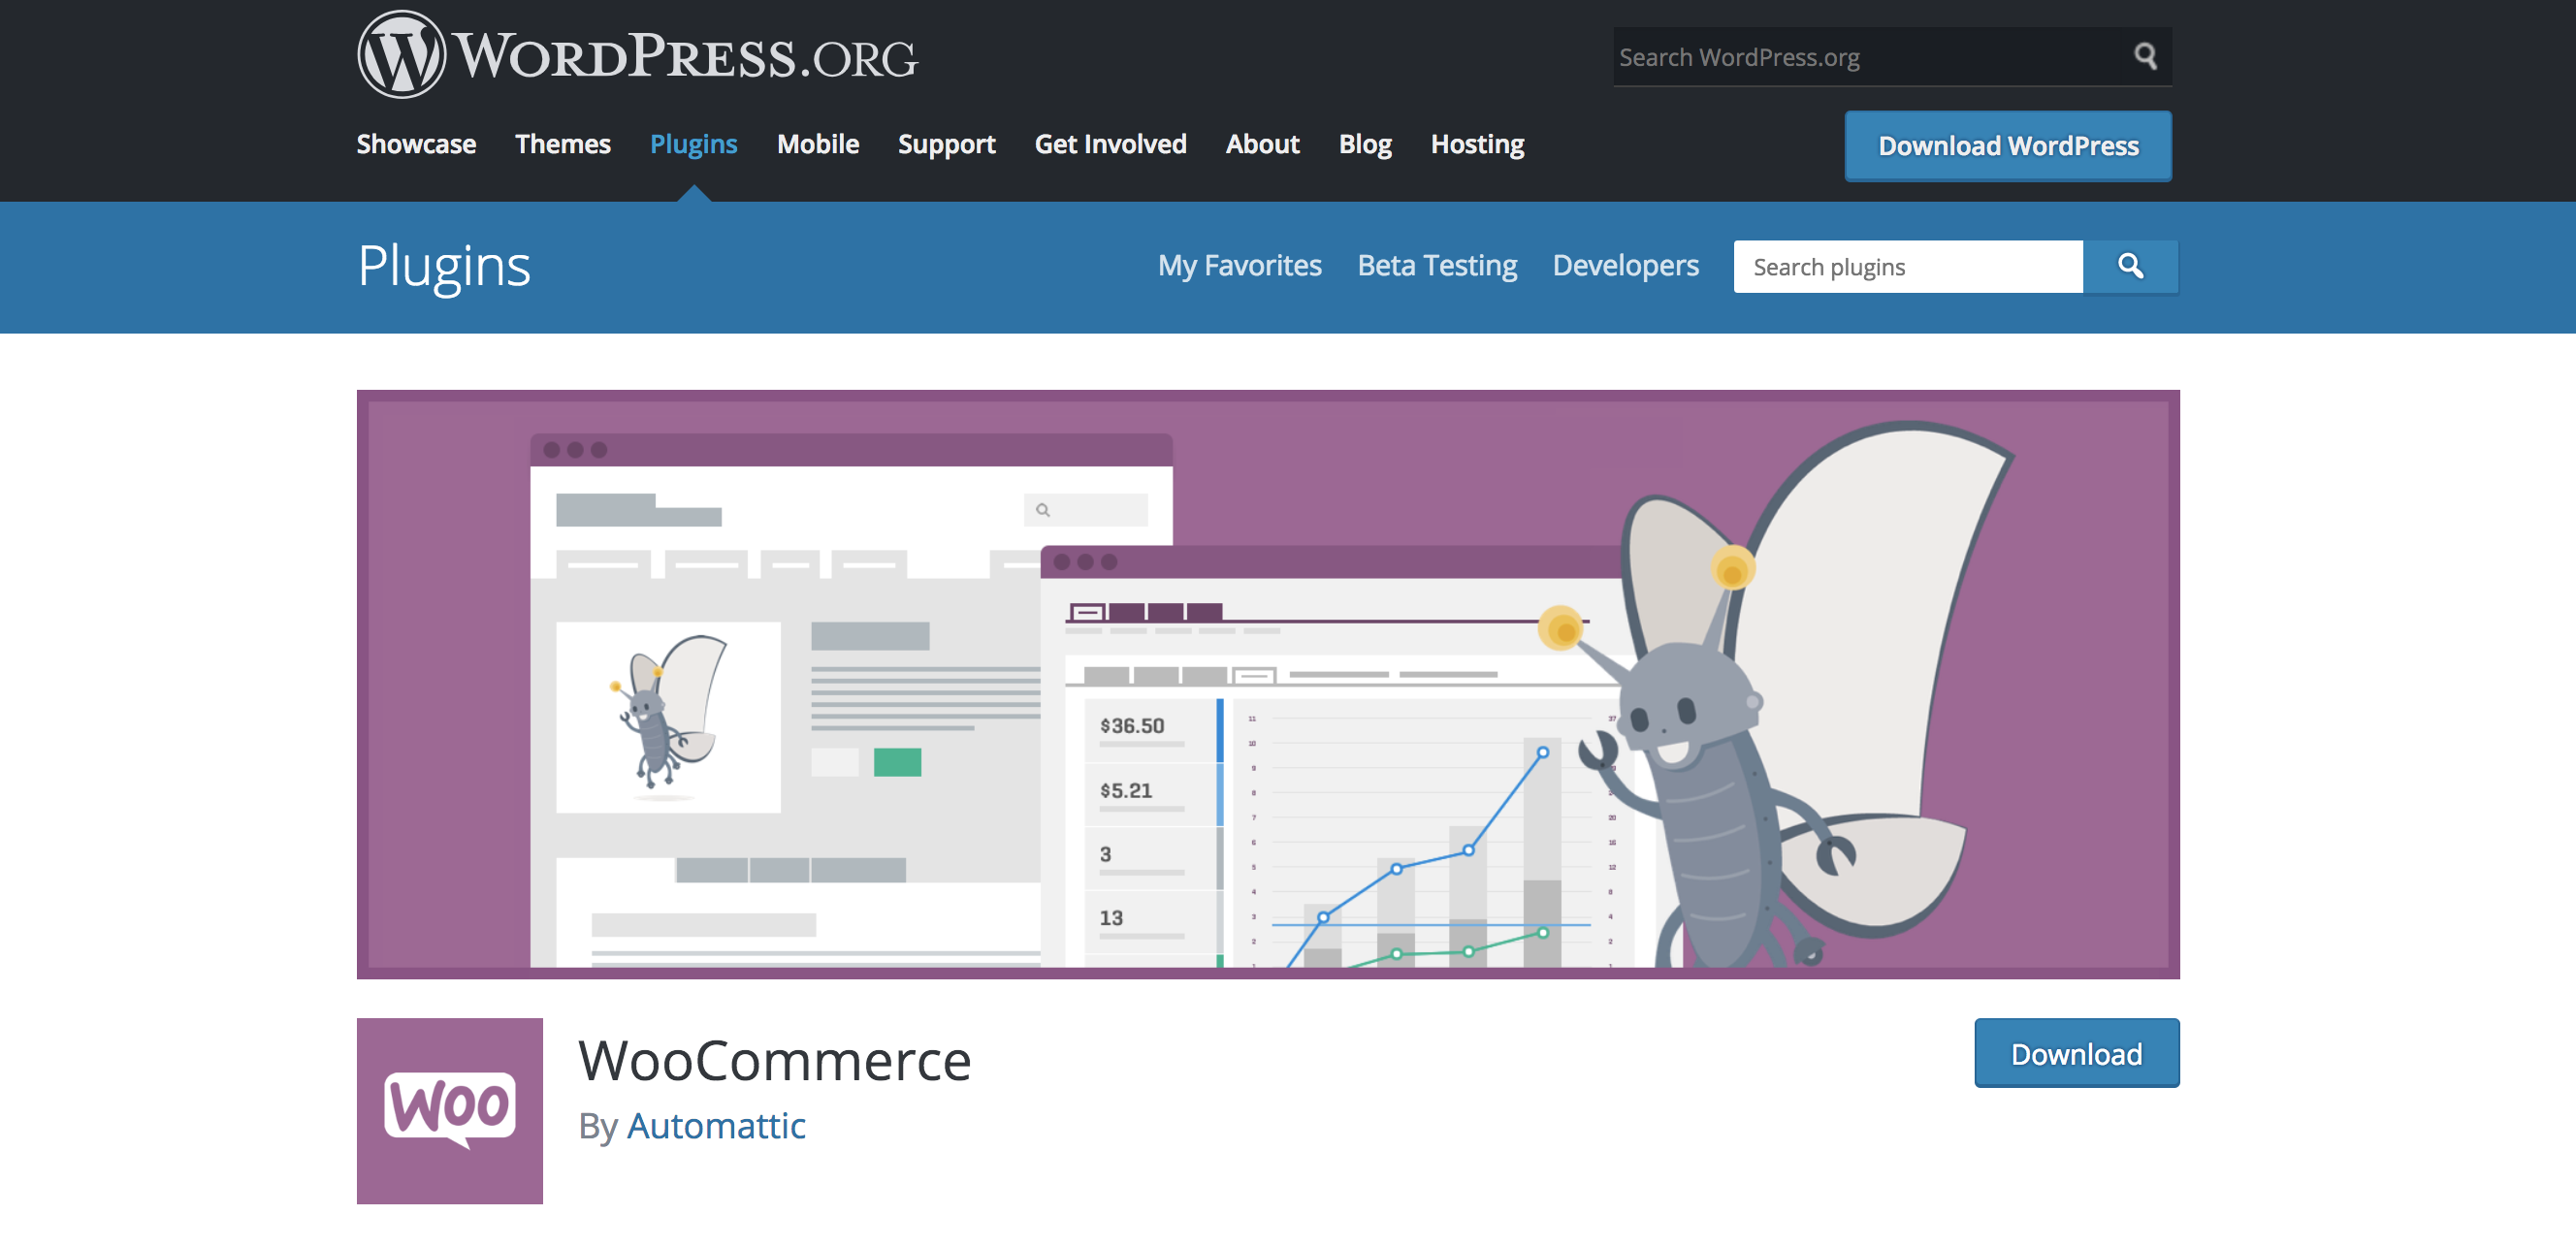 Update How To Create An Ecommerce Website With Wordpress Online Store 2018 New: The WooCommerce Blog